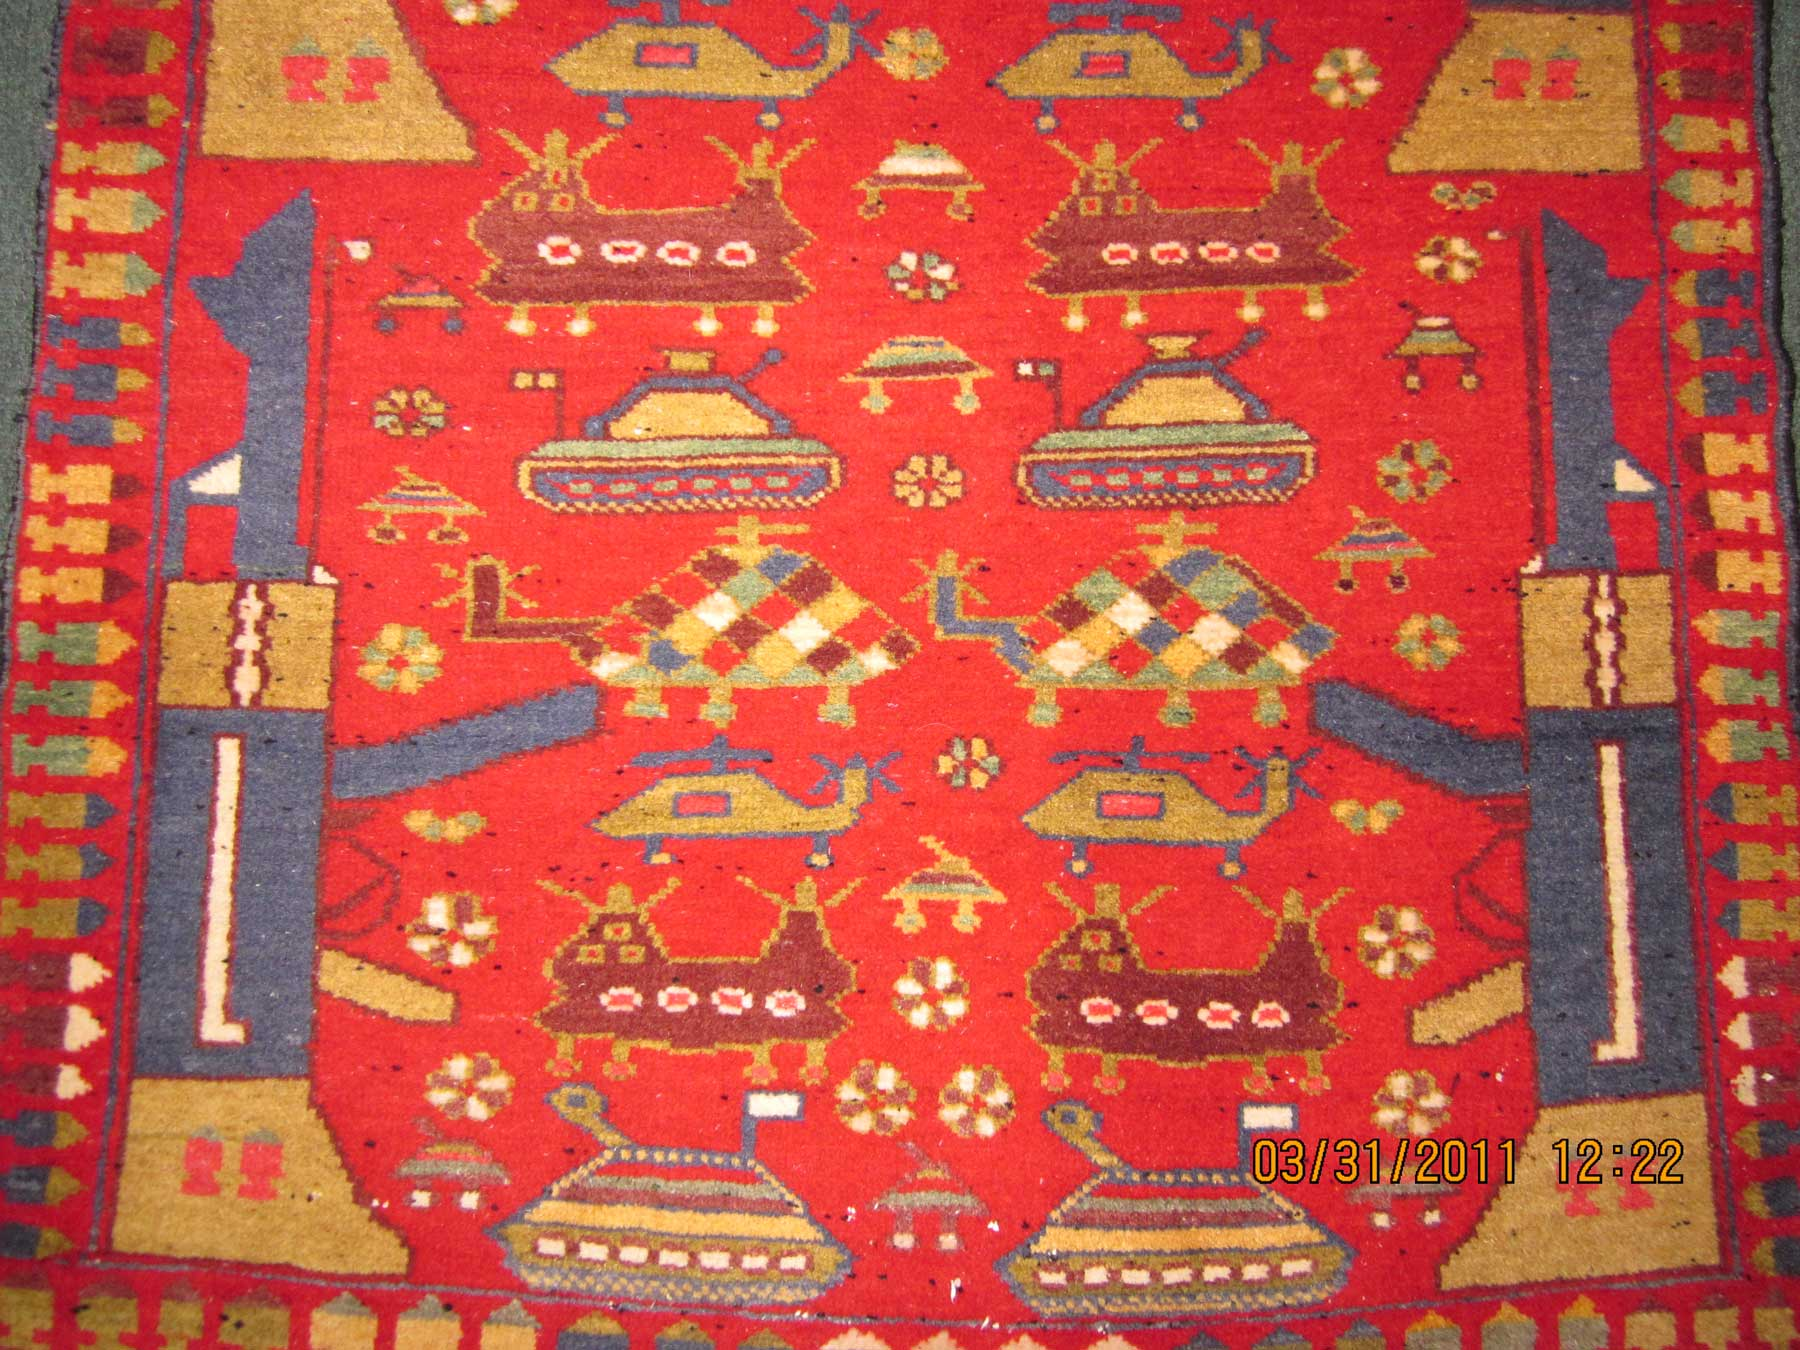 """#7) Afghan War Rug. 3'6"""" x 5"""" with AK-47's, tanks, bullets and helicopters!"""